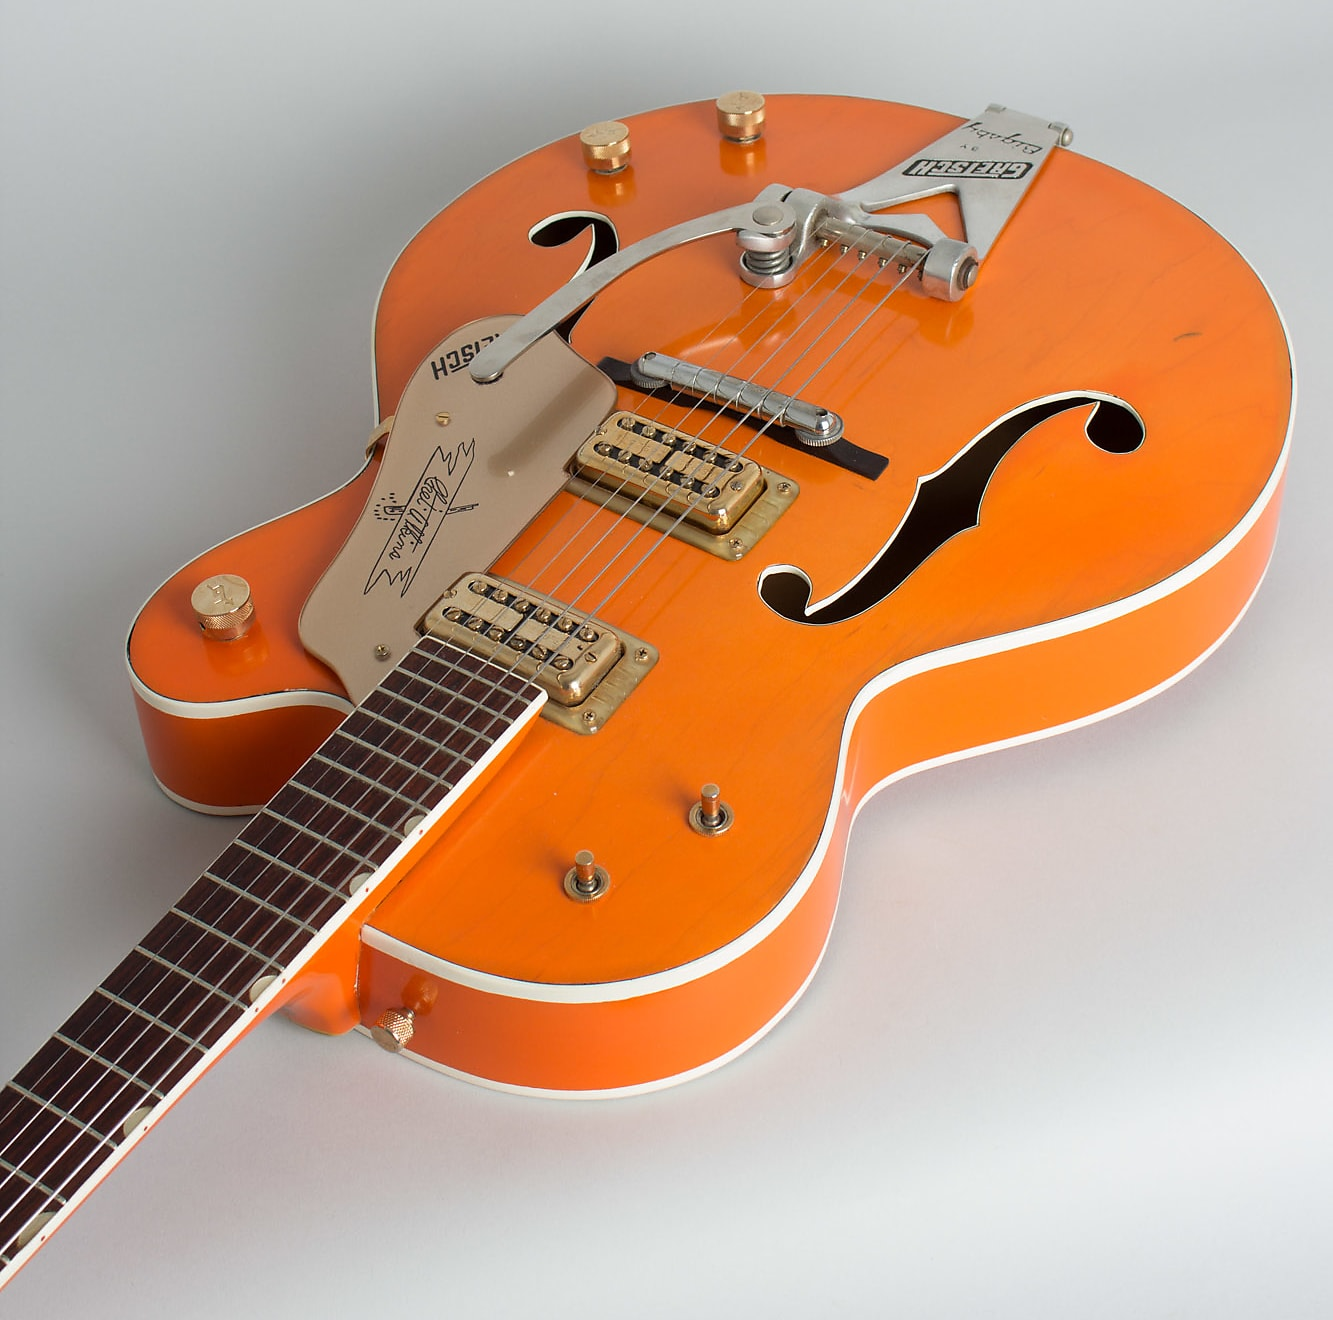 Gretsch  Model 6120 Conversion Arch Top Hollow Body Electric Guitar (1960's), ser. #40425, white tolex hard shell case.